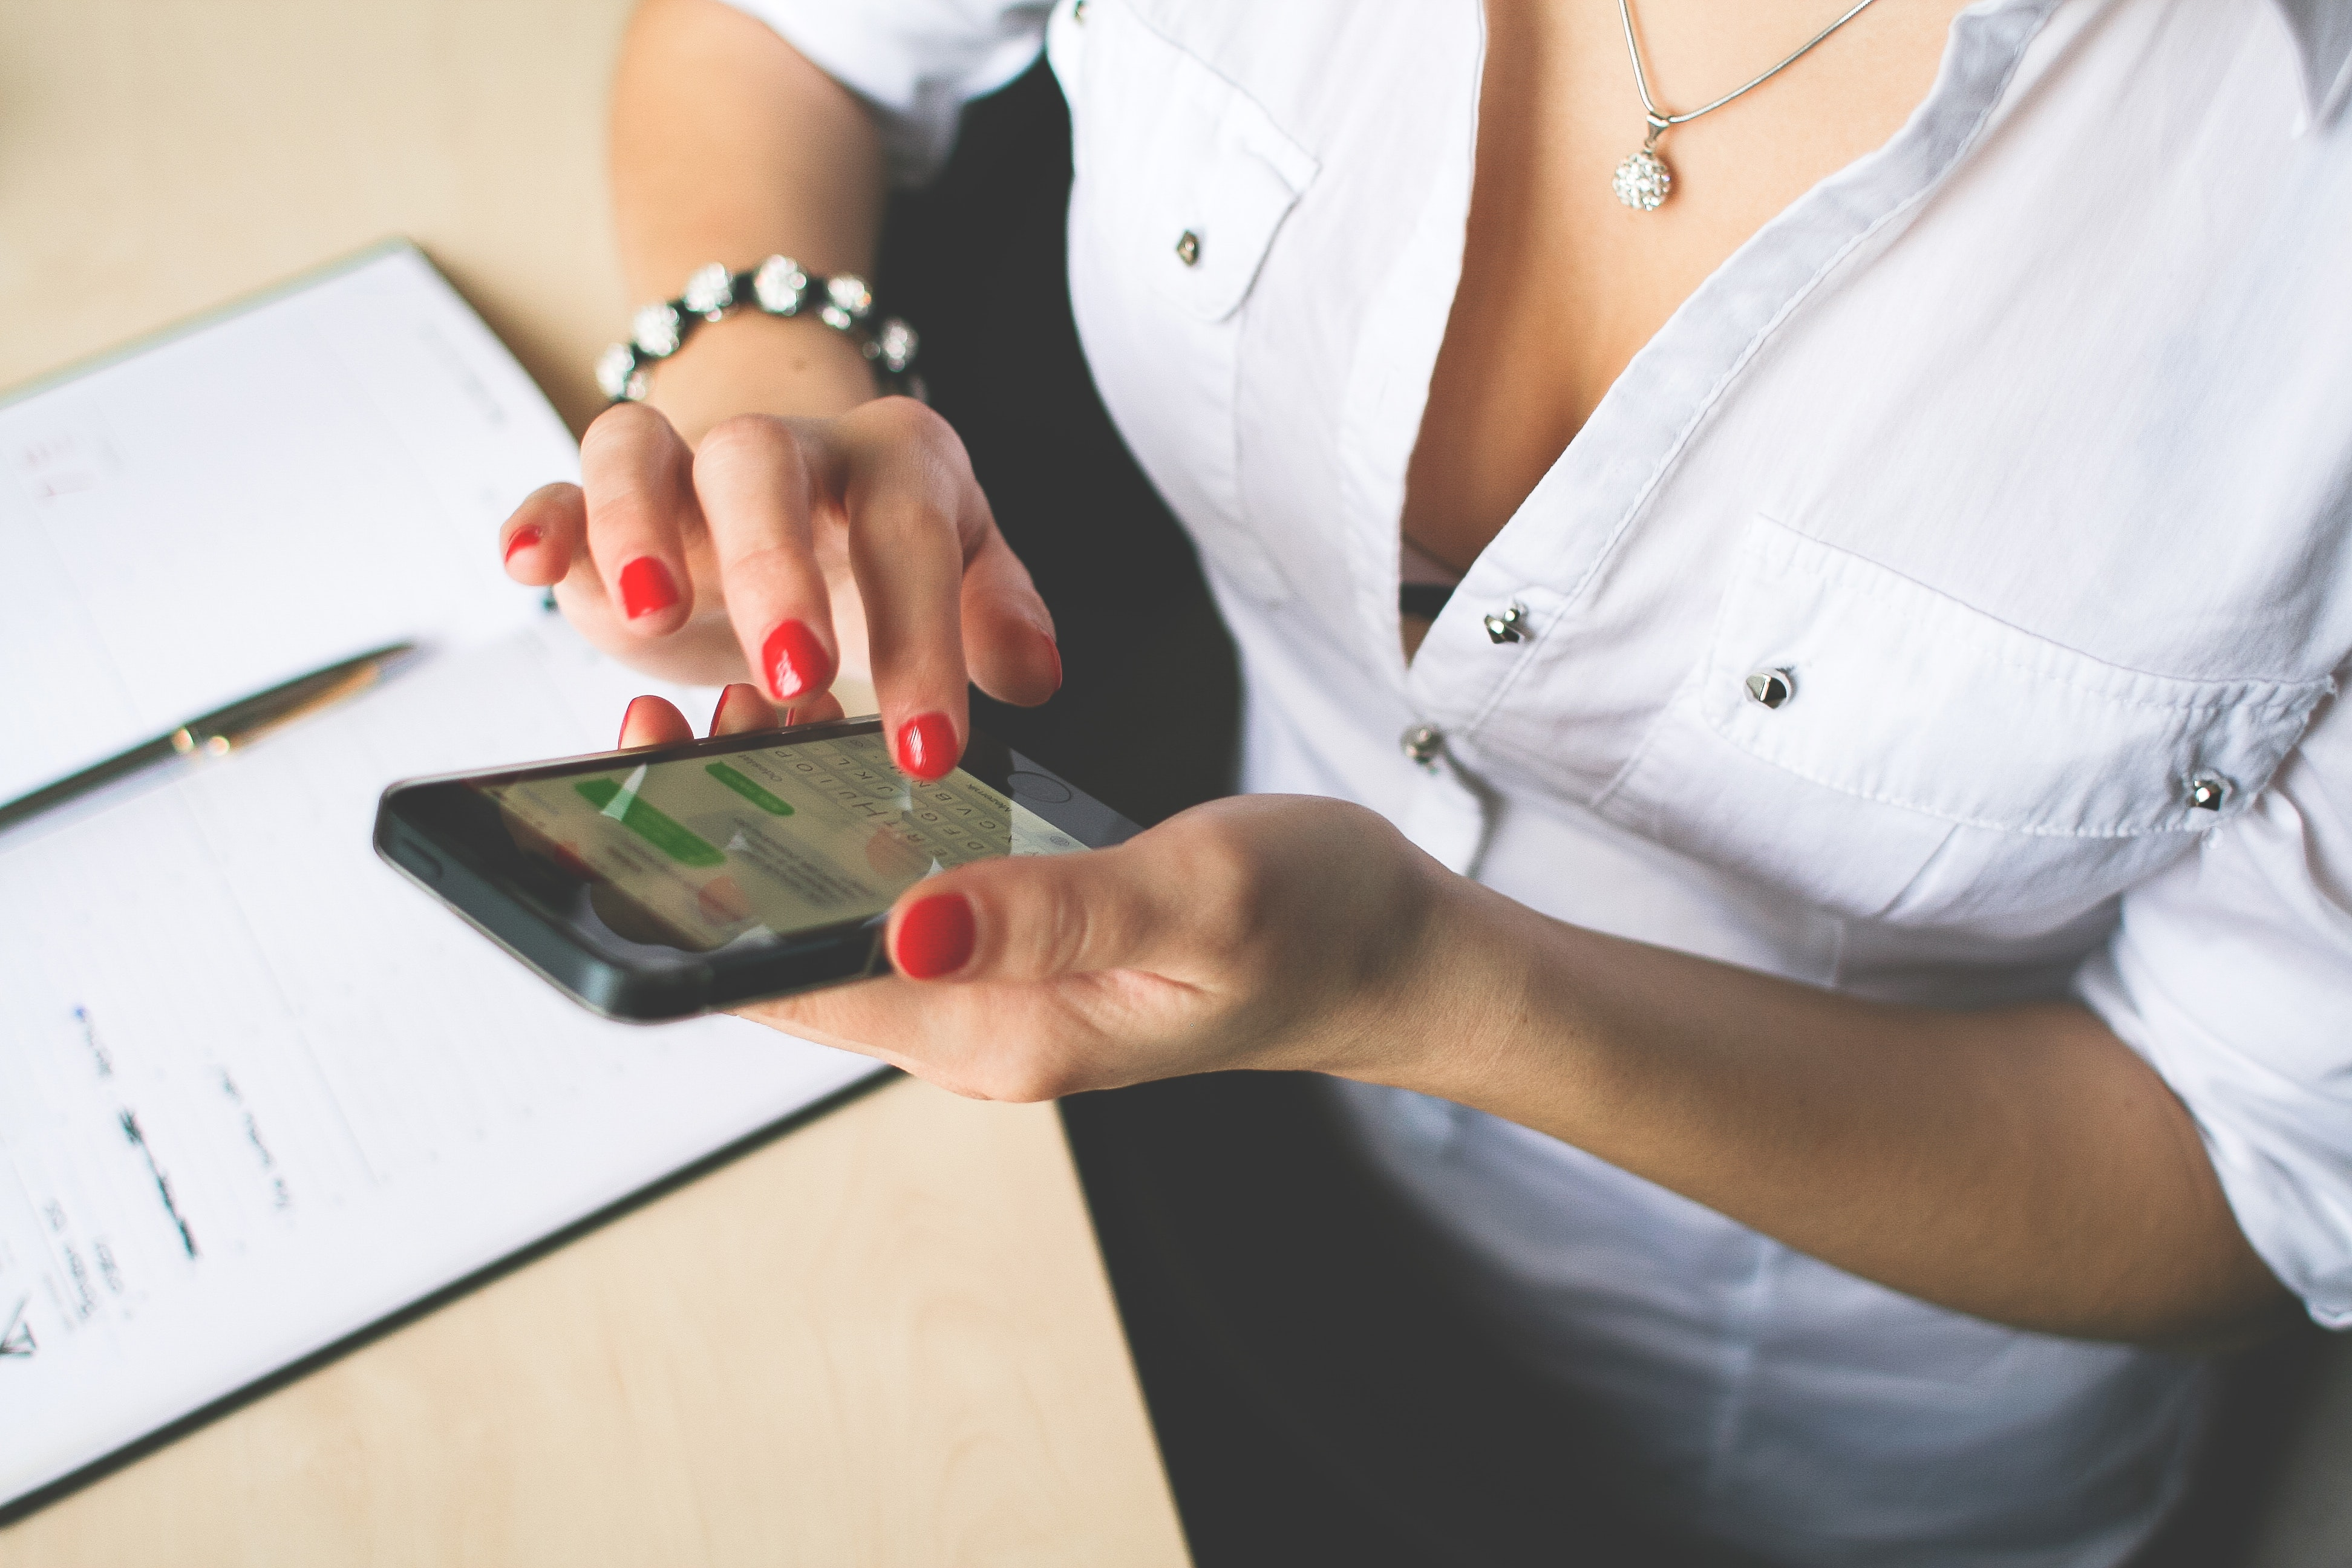 Woman in White Button Up Top and Holding Black Android Smartphone, Blur, Message, Technology, Pen, HQ Photo